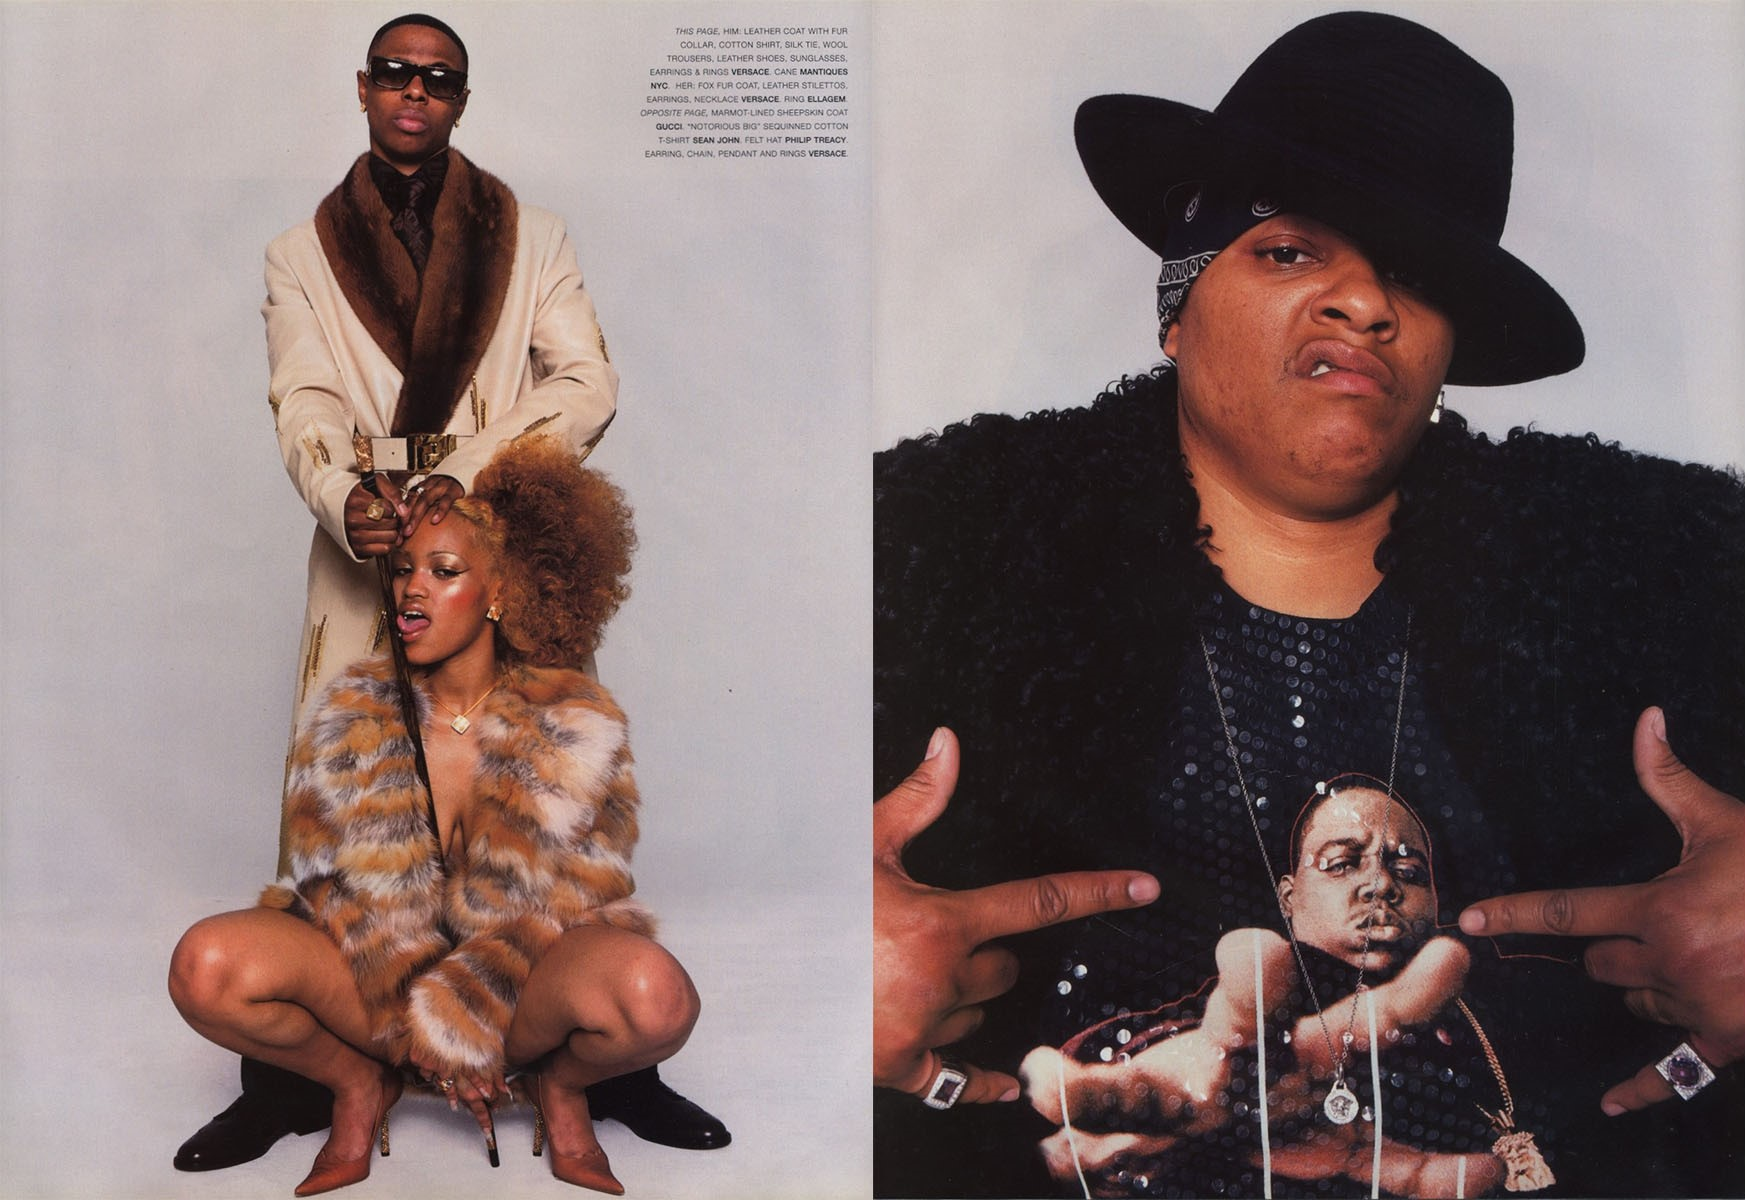 gang bang photography terry richardson stylist jason farrer vogue hommes international fw 2001 02 4